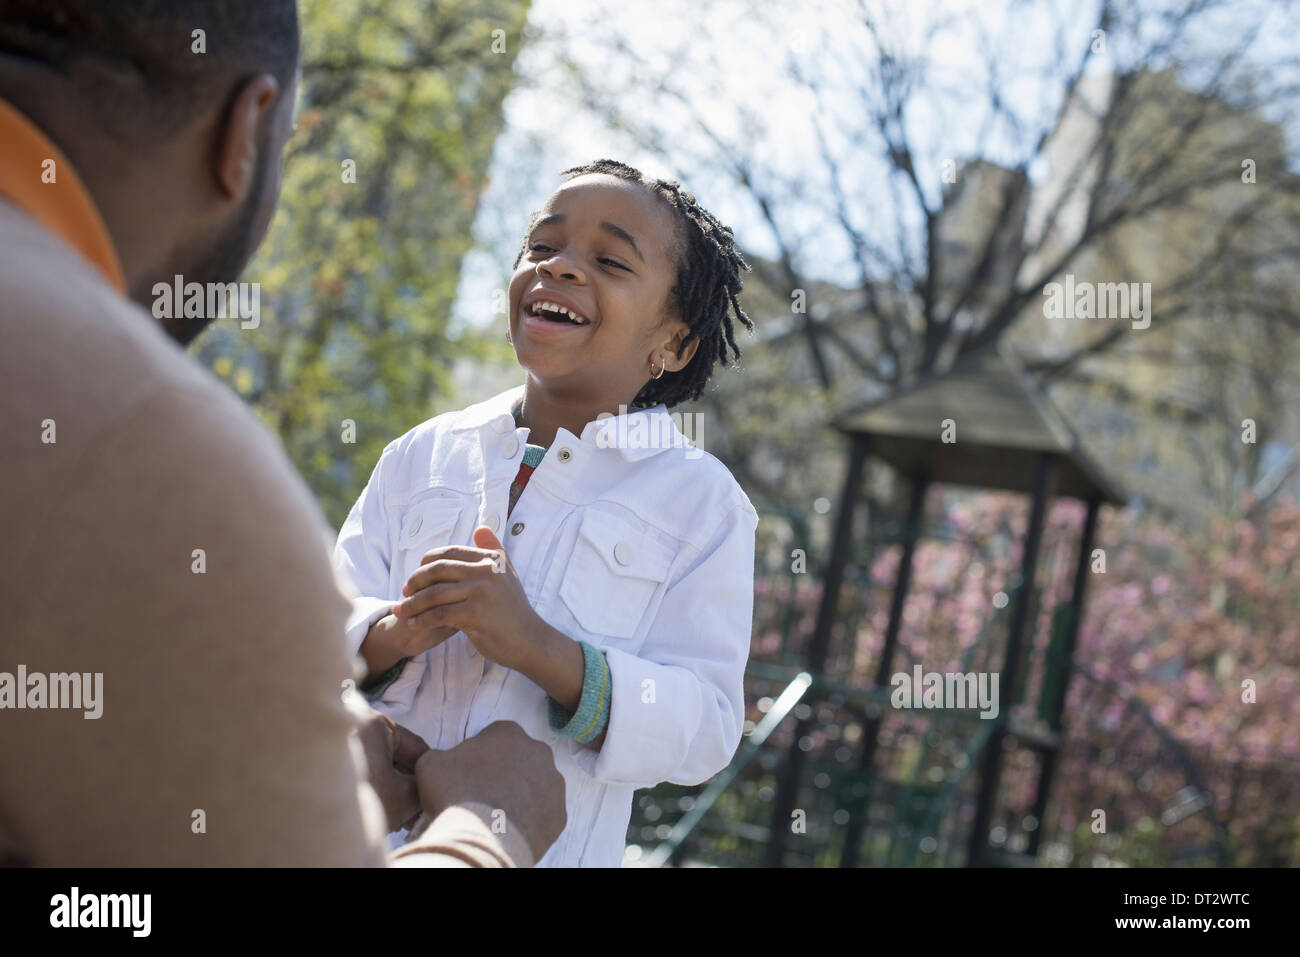 A father kneeling and buttoning his son's jacket - Stock Image